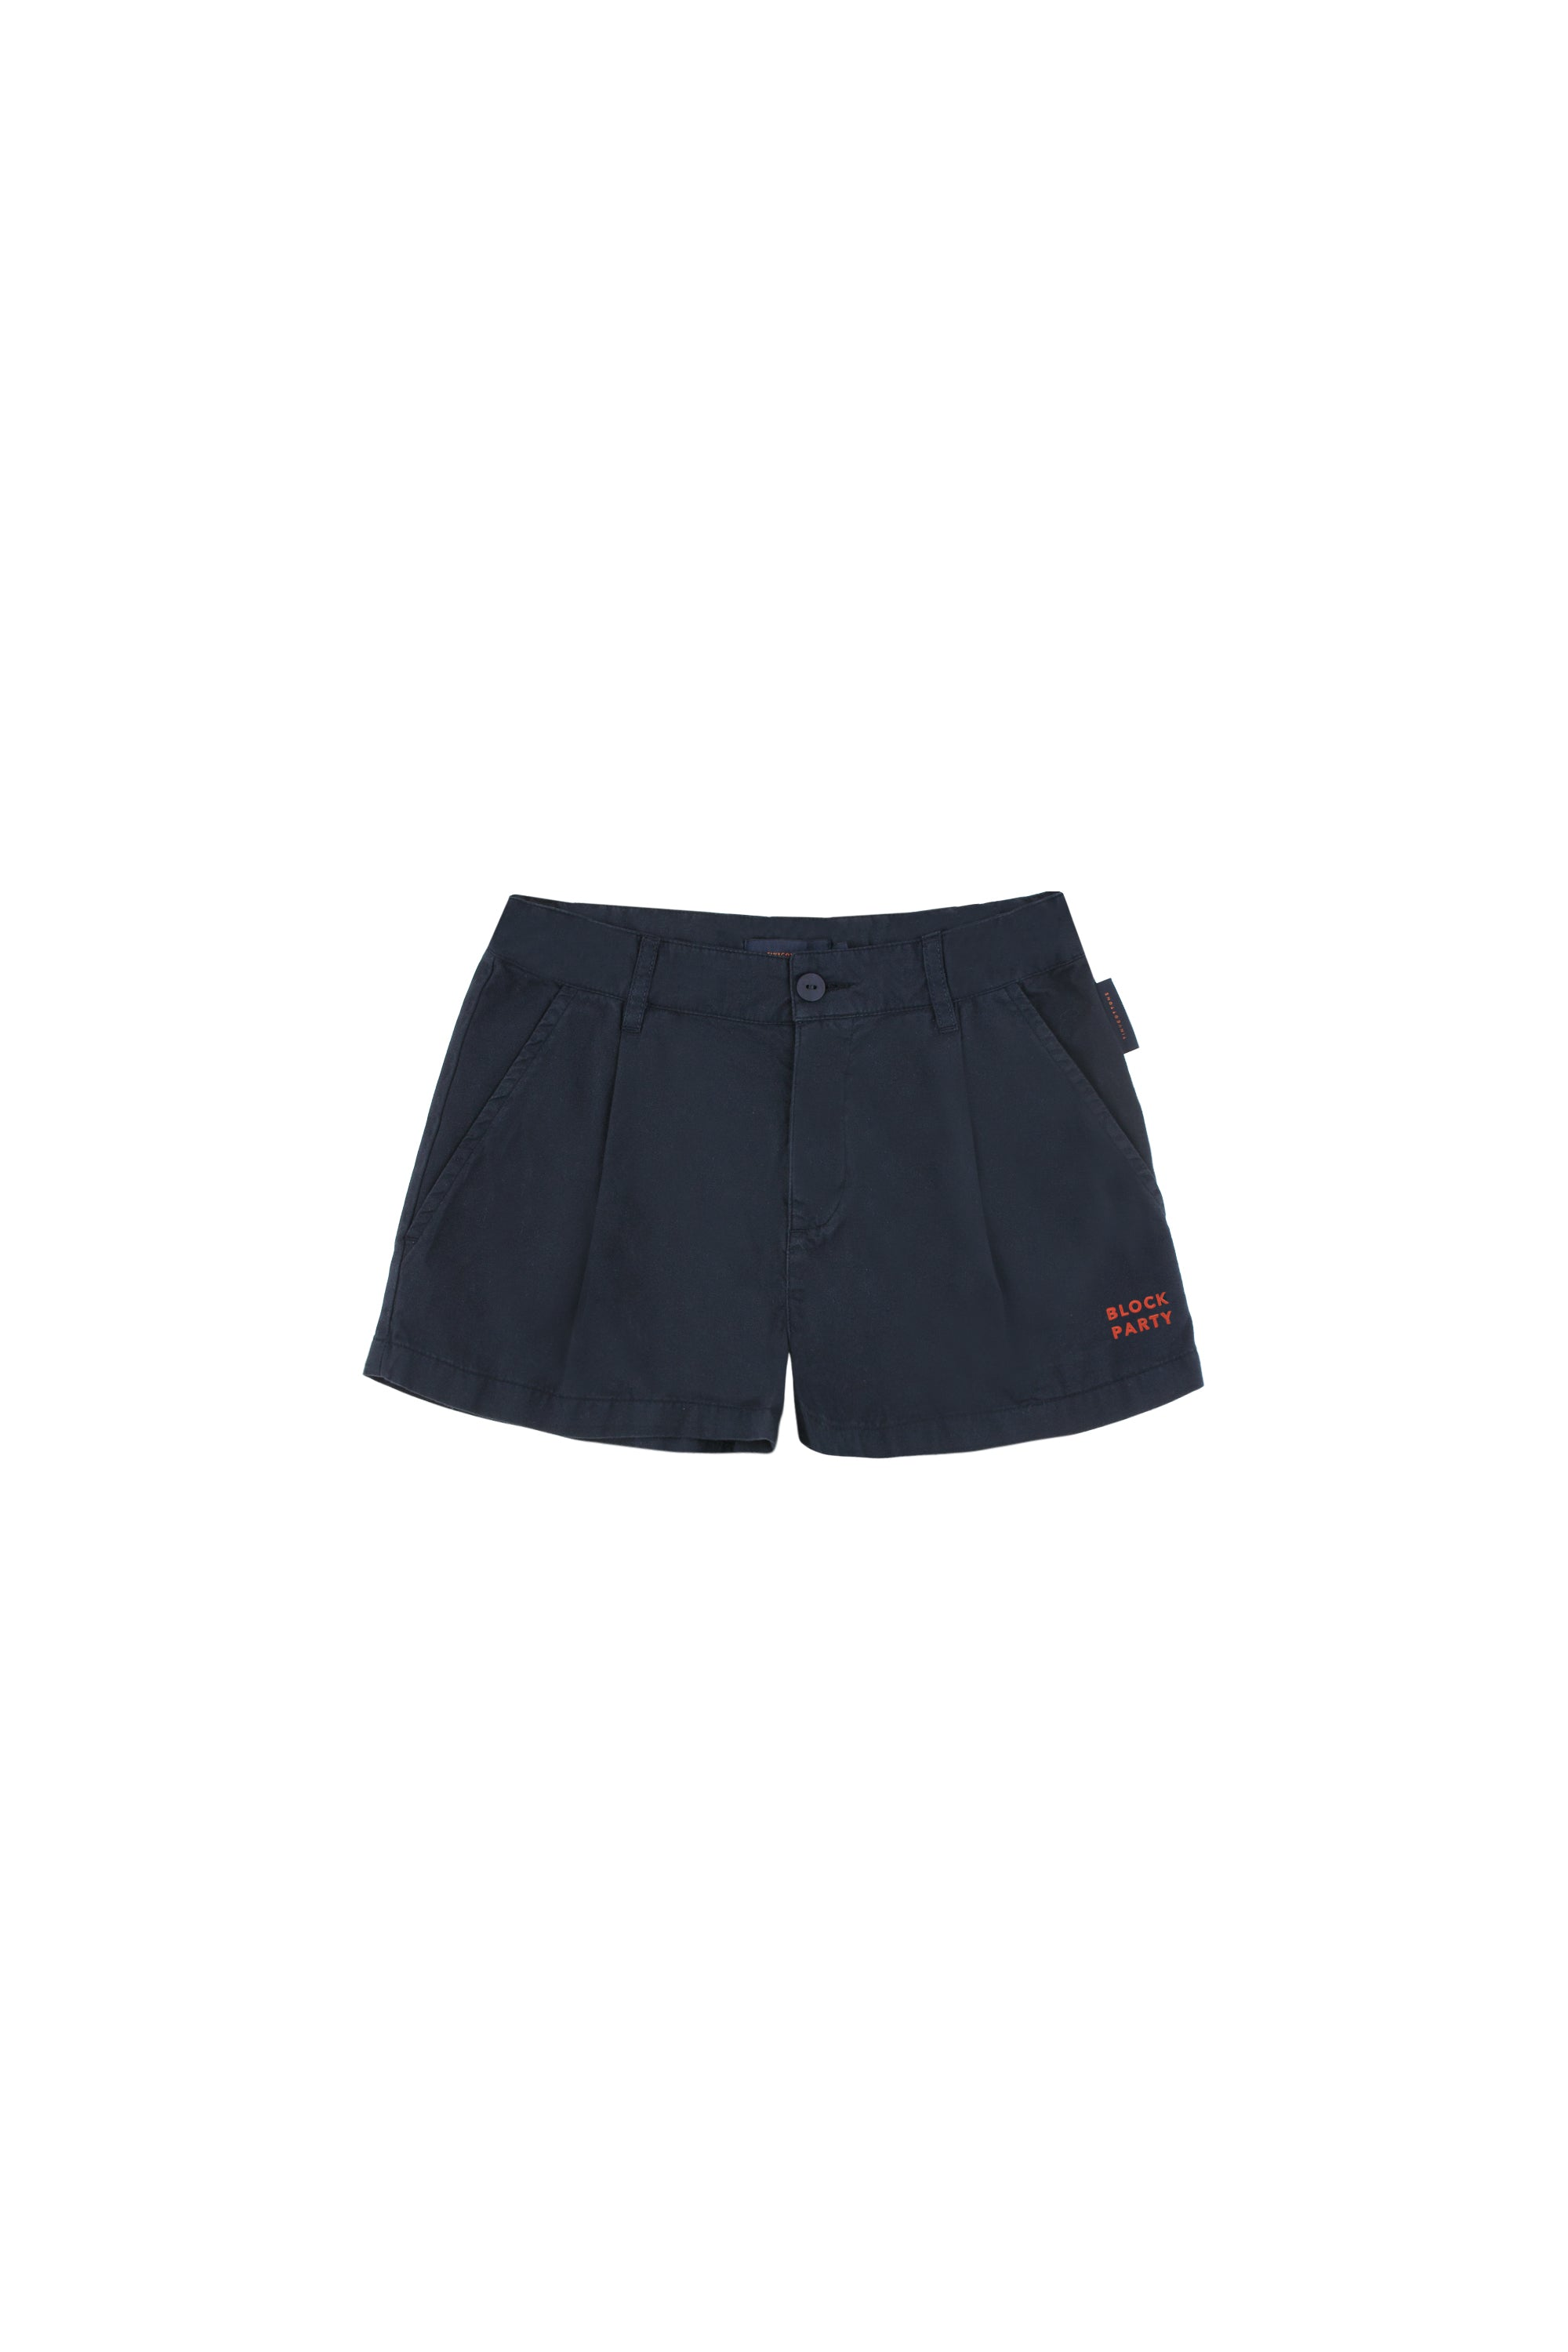 Tiny Cottons Block Party Pleat Shorts - Navy